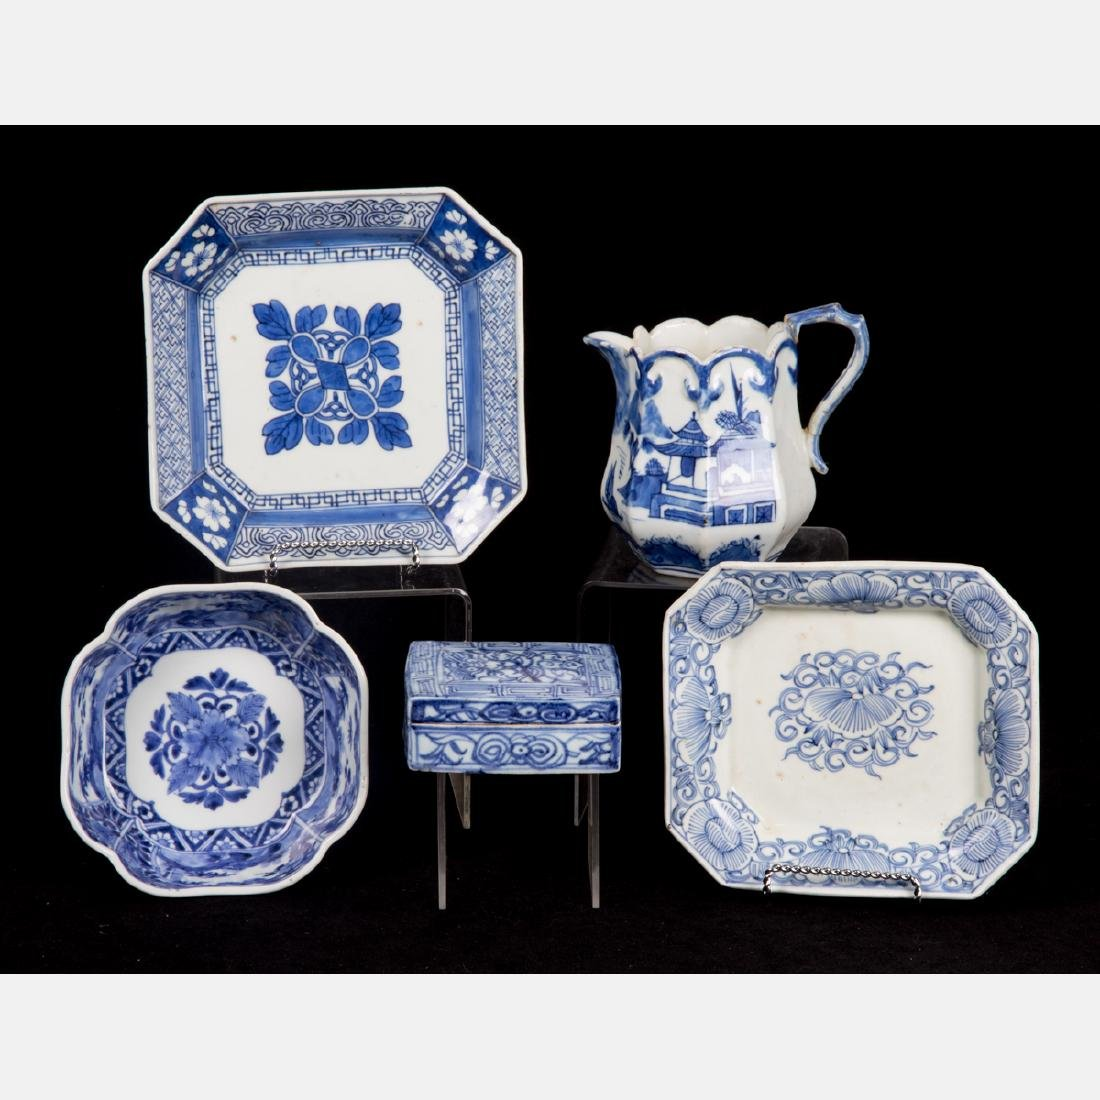 A Group of Five Chinese Blue and White Porcelain